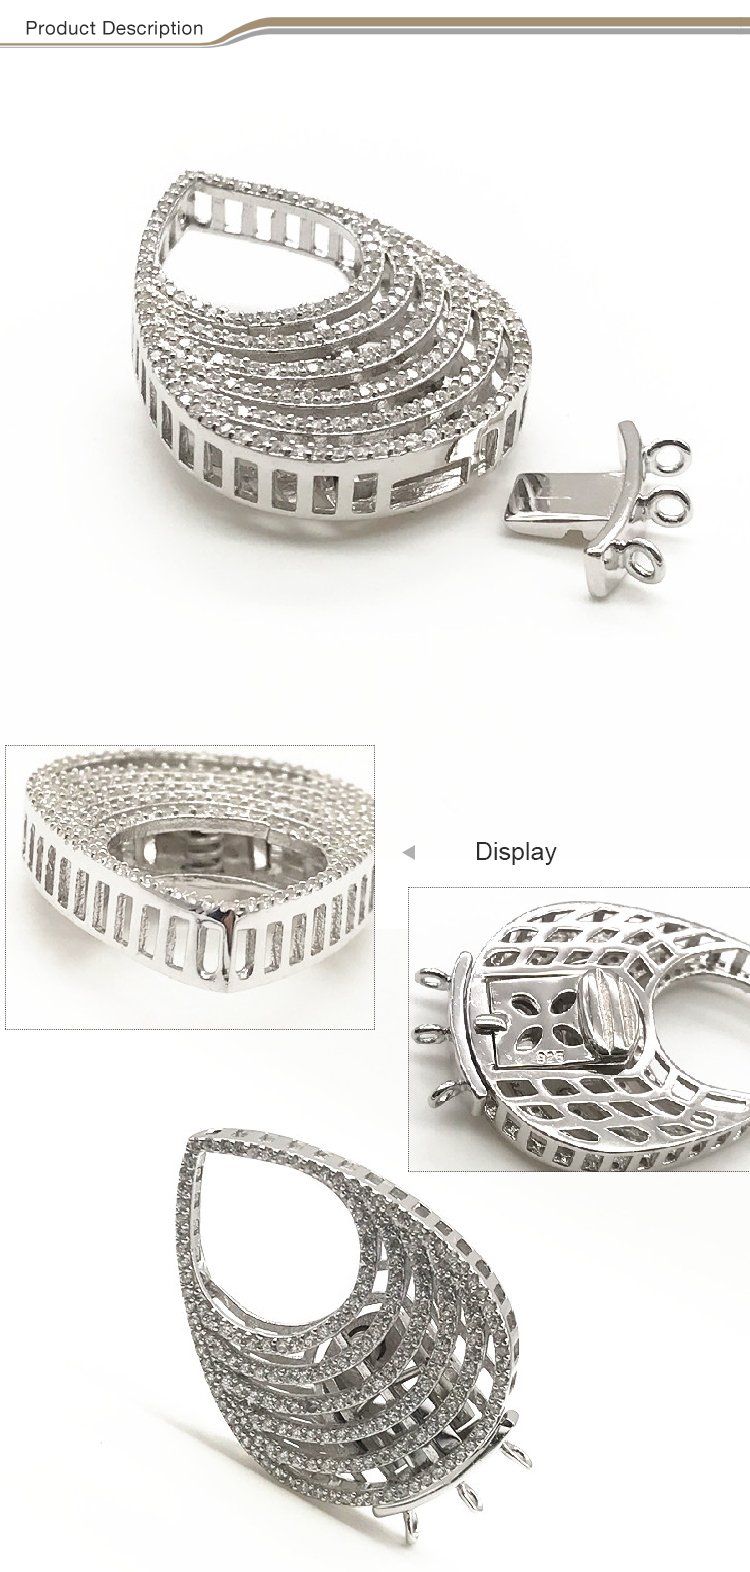 Hot selling 925 Sterling Silver Necklace clasp Jewelry connector clasp locket for making Jewelry necklace